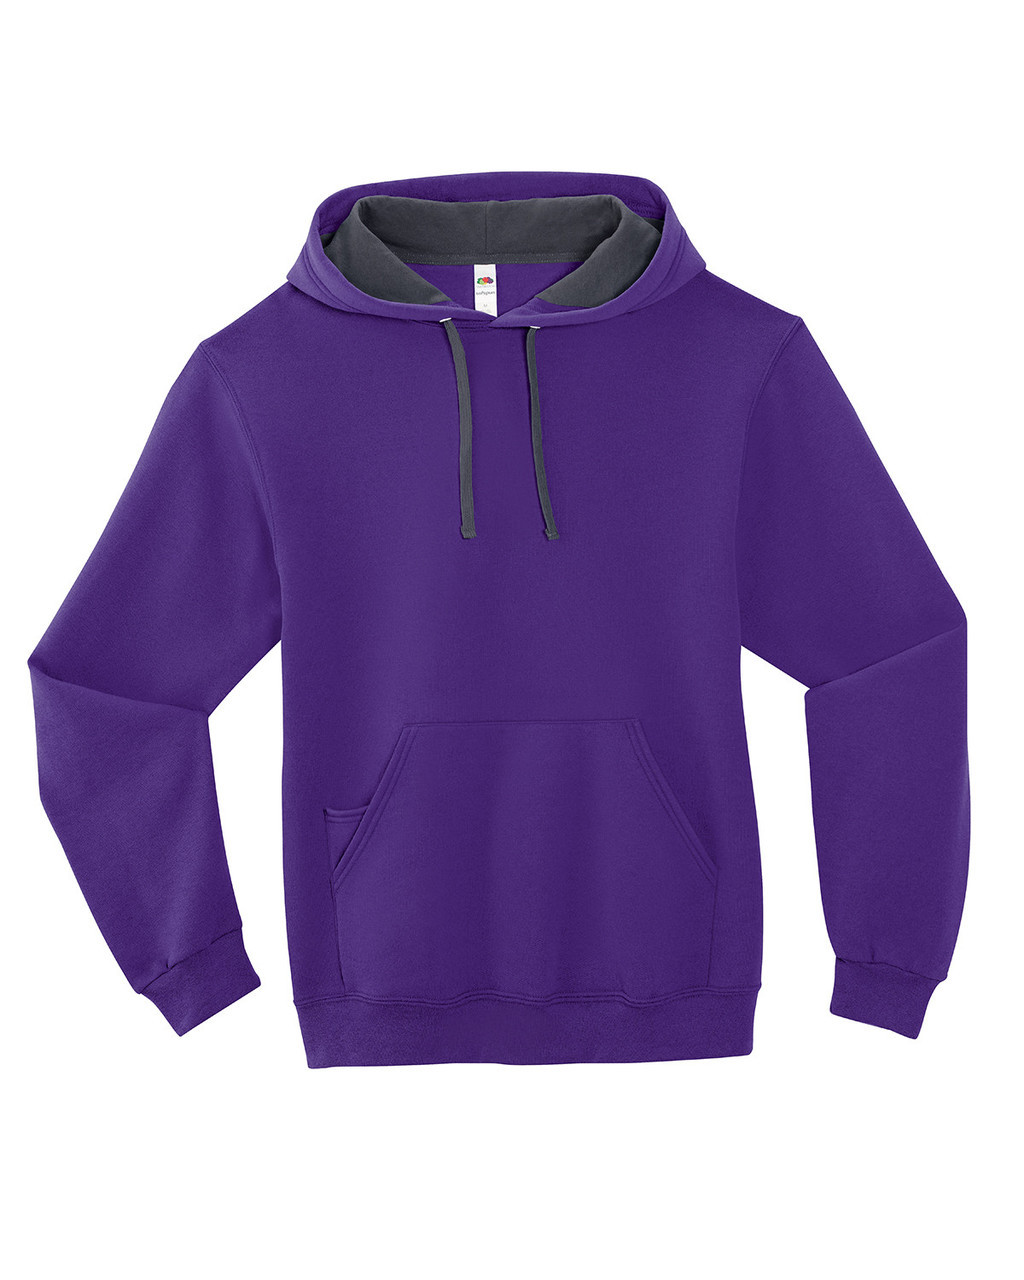 Purple - SF76R Fruit of the Loom Softspun Hooded Sweatshirt | Blankclothing.ca